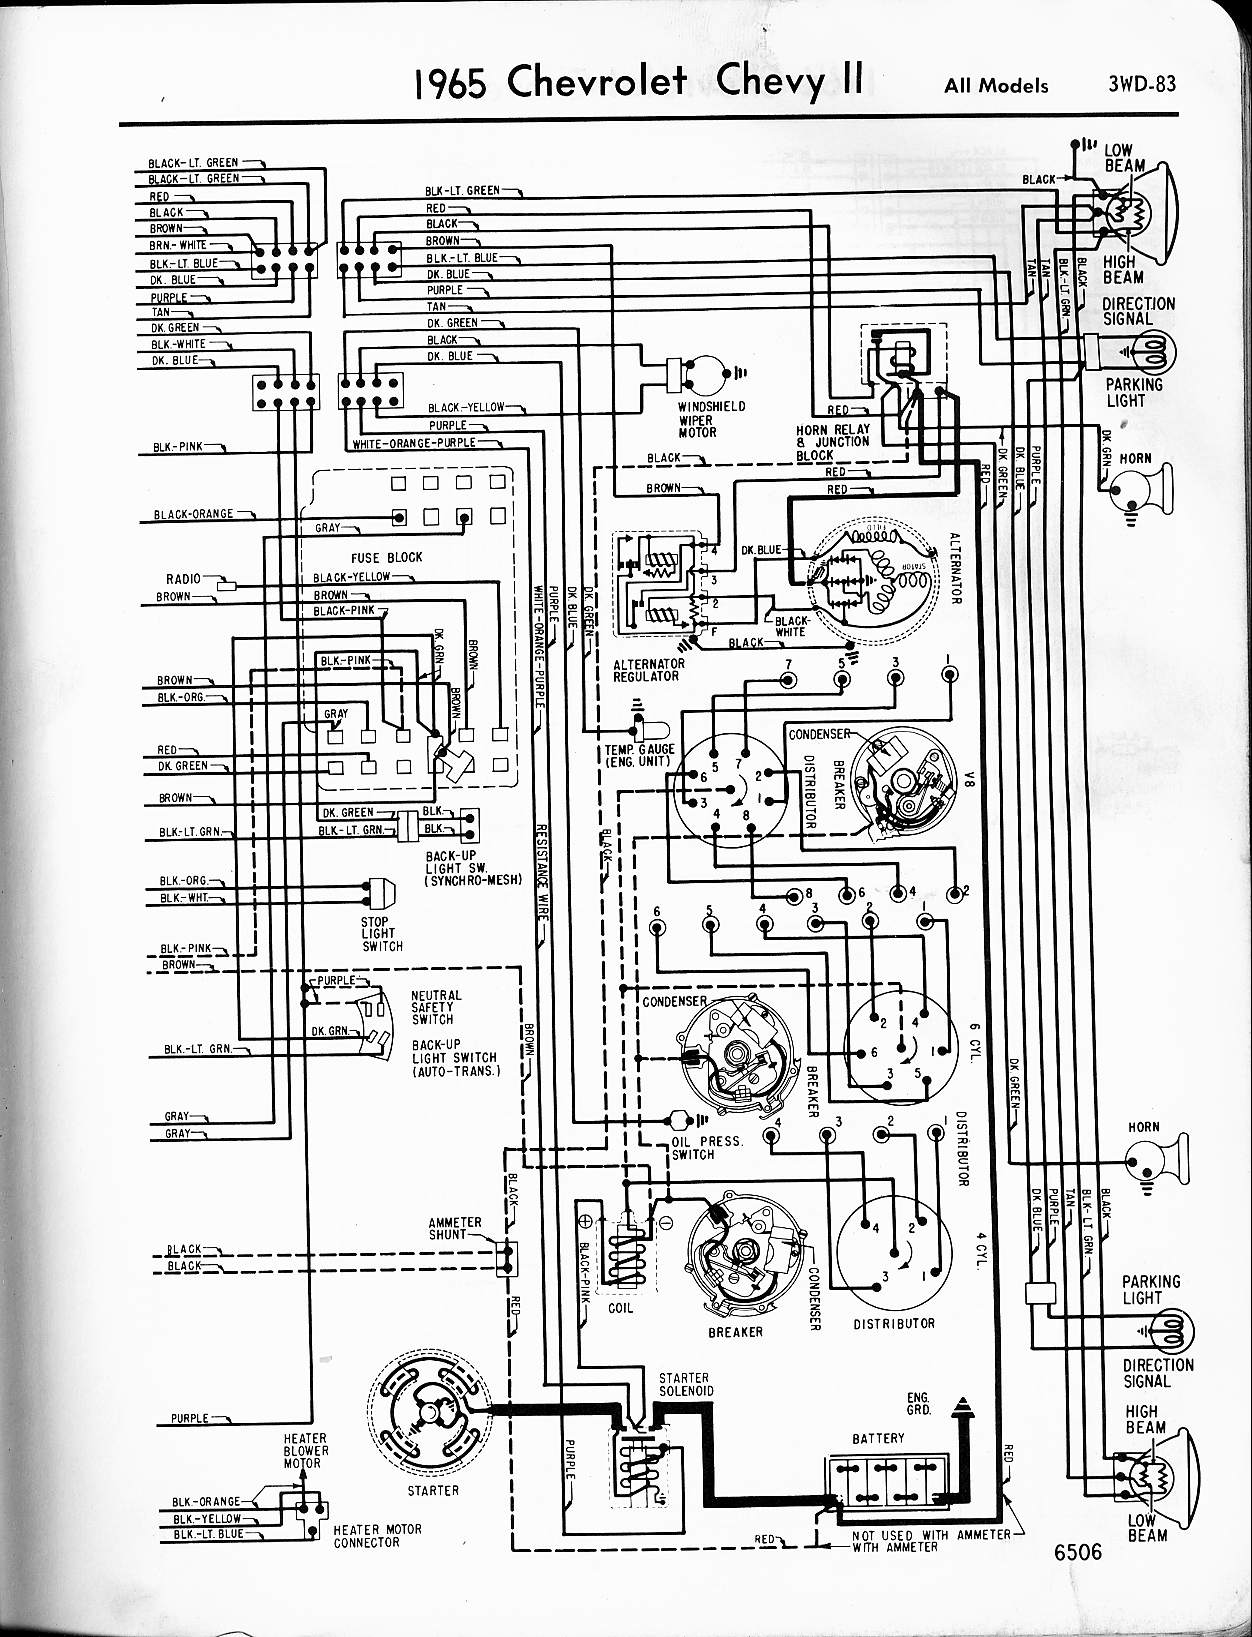 MWireChev65_3WD 083 1969 chevy nova wiring diagram 1969 chevelle engine wiring diagram 1973 chevy nova wiring harness at edmiracle.co